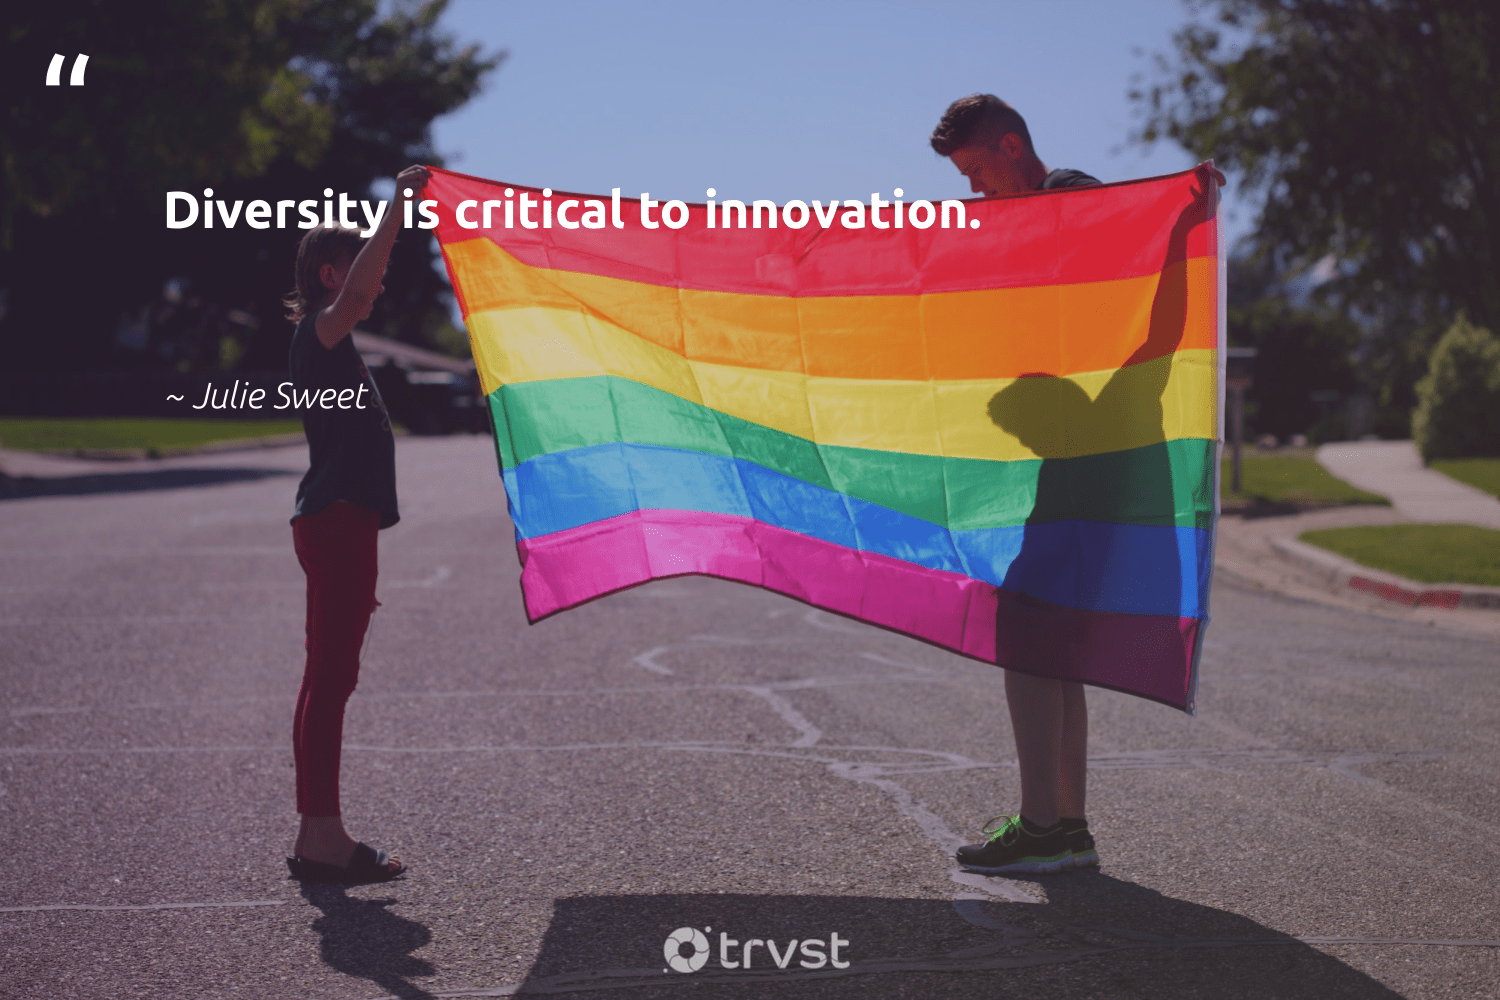 """Diversity is critical to innovation.""  - Julie Sweet #trvst #quotes #diversity #discrimination #representationmatters #socialchange #giveback #impact #inclusion #makeadifference #weareallone #dosomething"